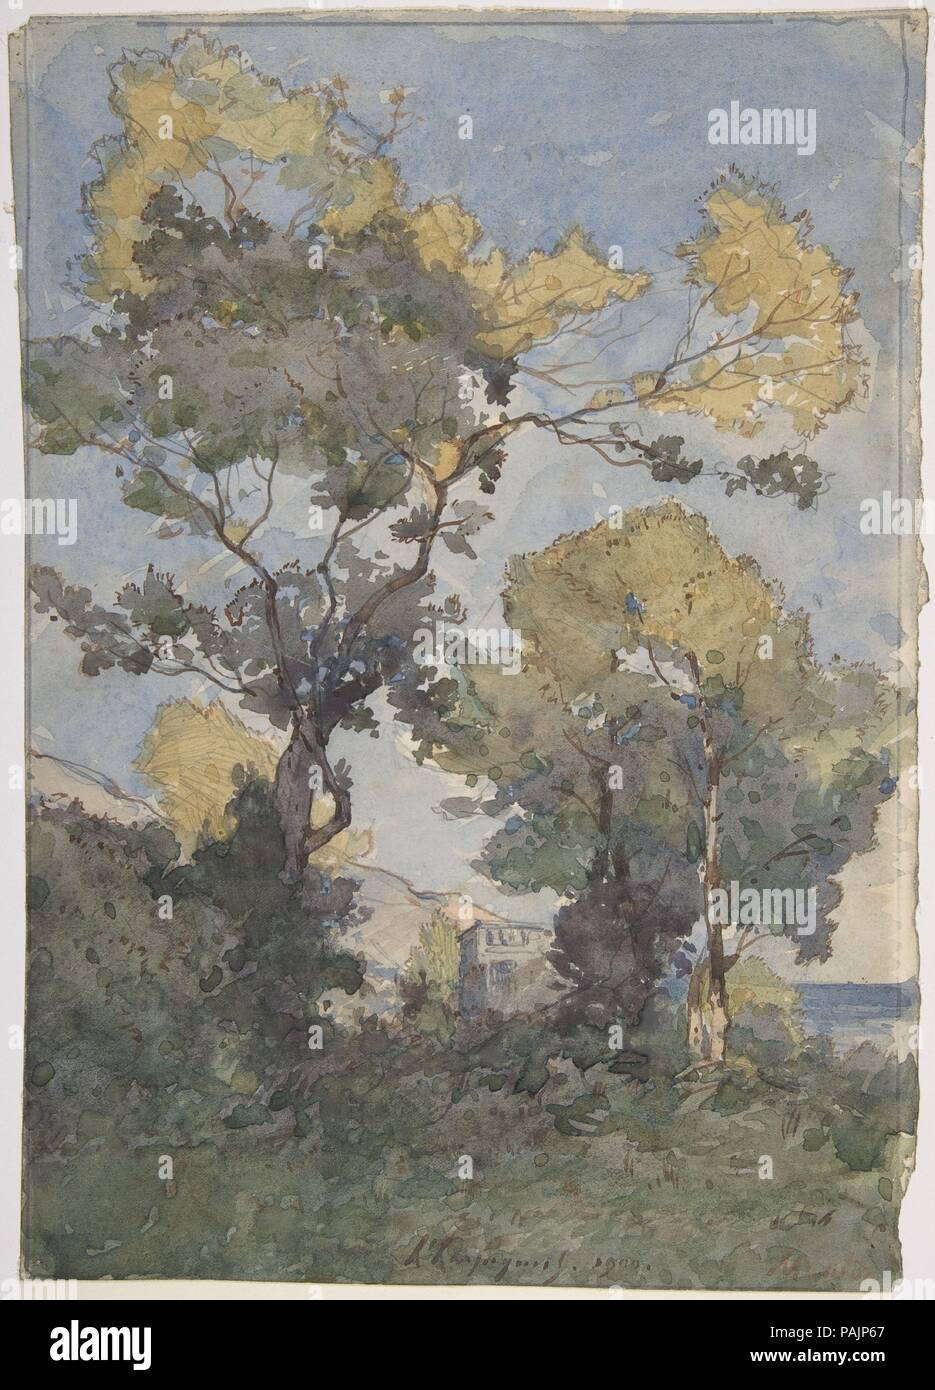 Landscape. Artist: Henri-Joseph Harpignies (French, Valenciennes 1819-1916 Saint-Privé). Dimensions: Overall: 11 1/16 x 7 13/16in. (28.1 x 19.8cm)  frame: 21 x 16 in. (53.3 cm). Date: 1900. Museum: Metropolitan Museum of Art, New York, USA. - Stock Image